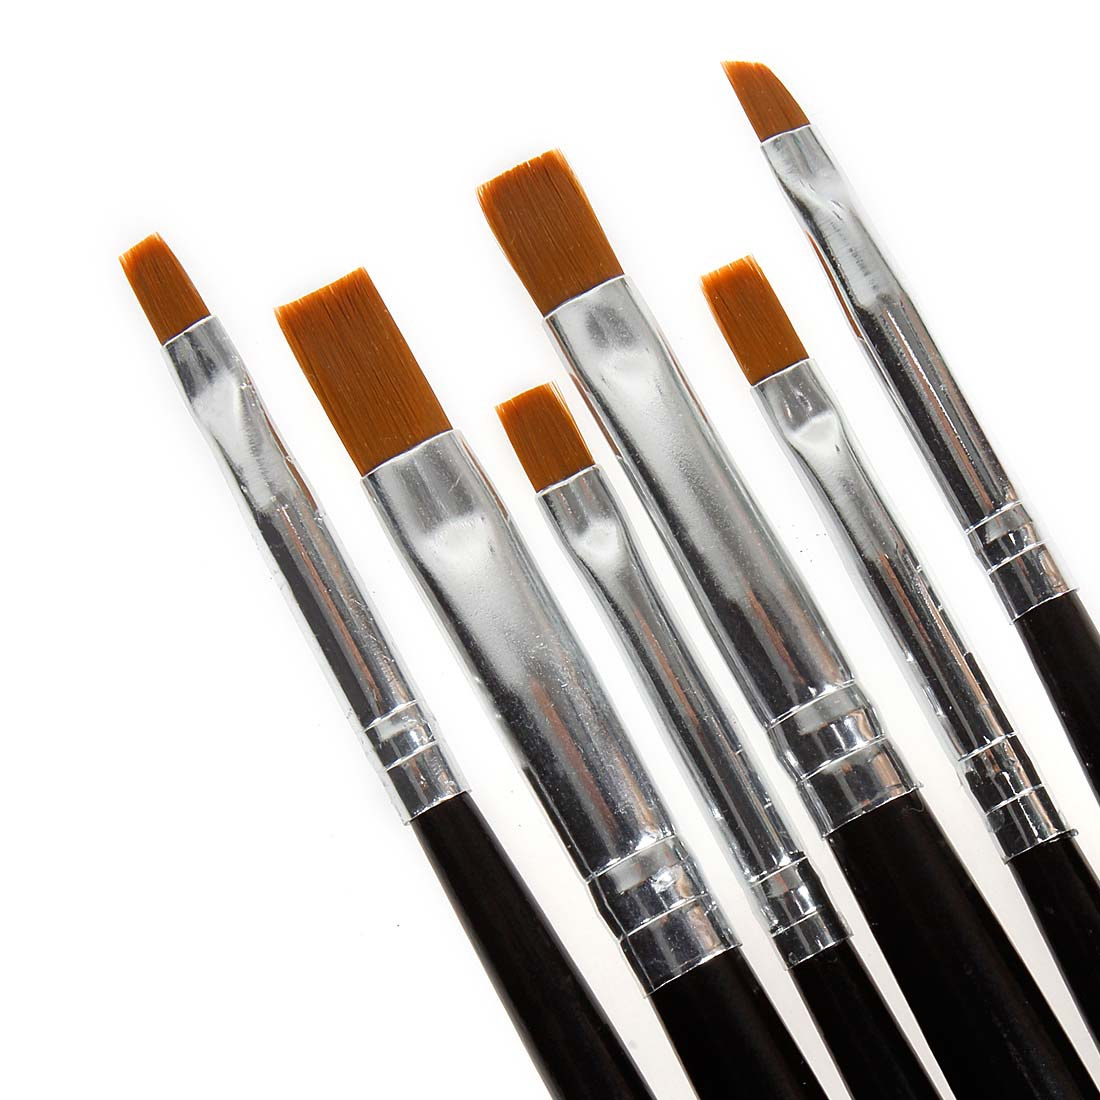 BMC 6pc Nail Art UV Gel Acrylic Salon Pen Painting Detailing Flat Brush Kit